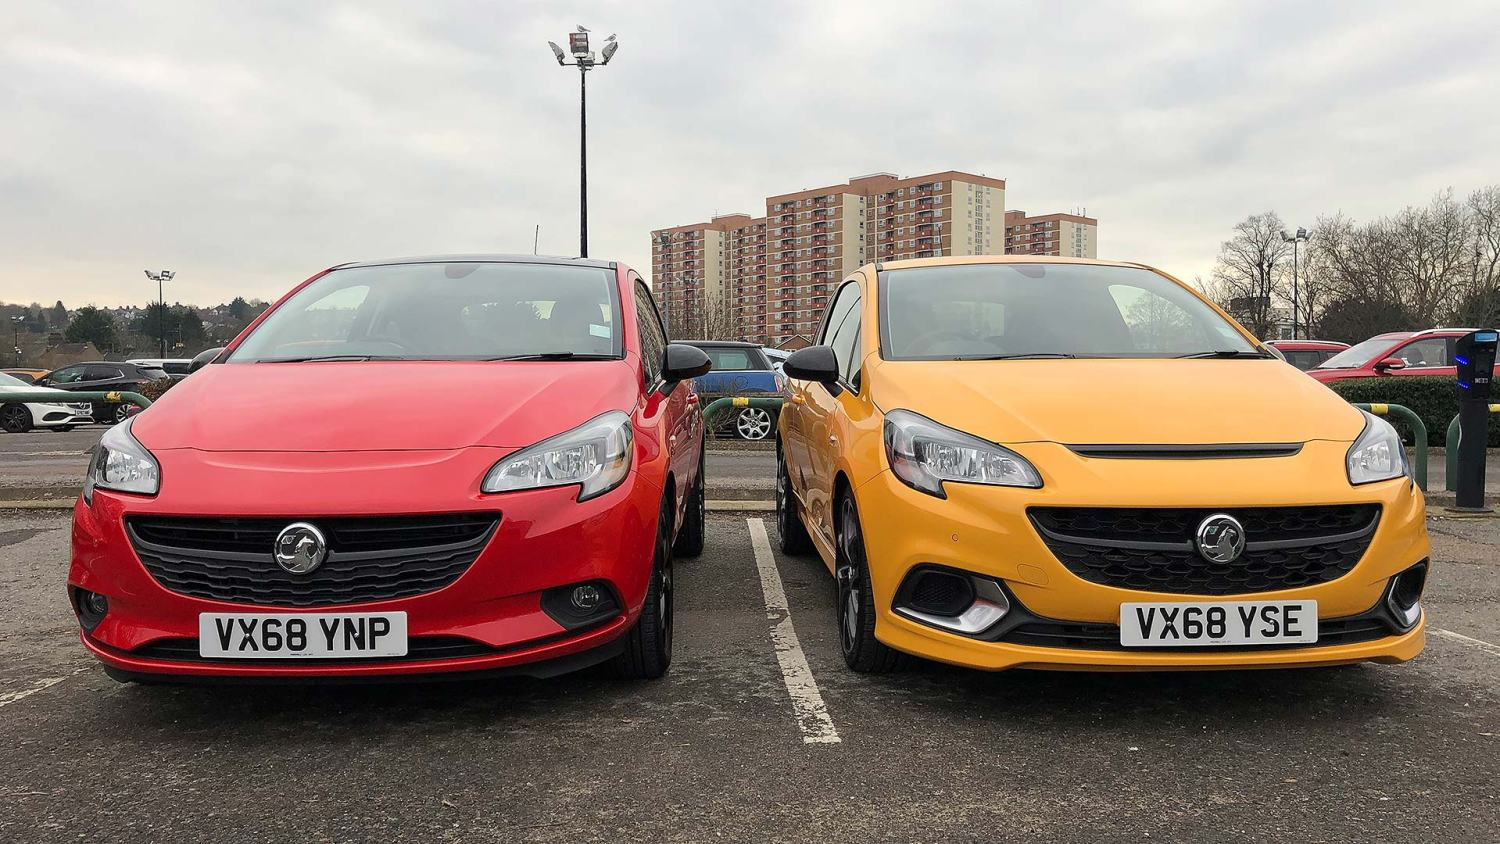 Vauxhall Corsa Griffin Edition and Corsa GSi